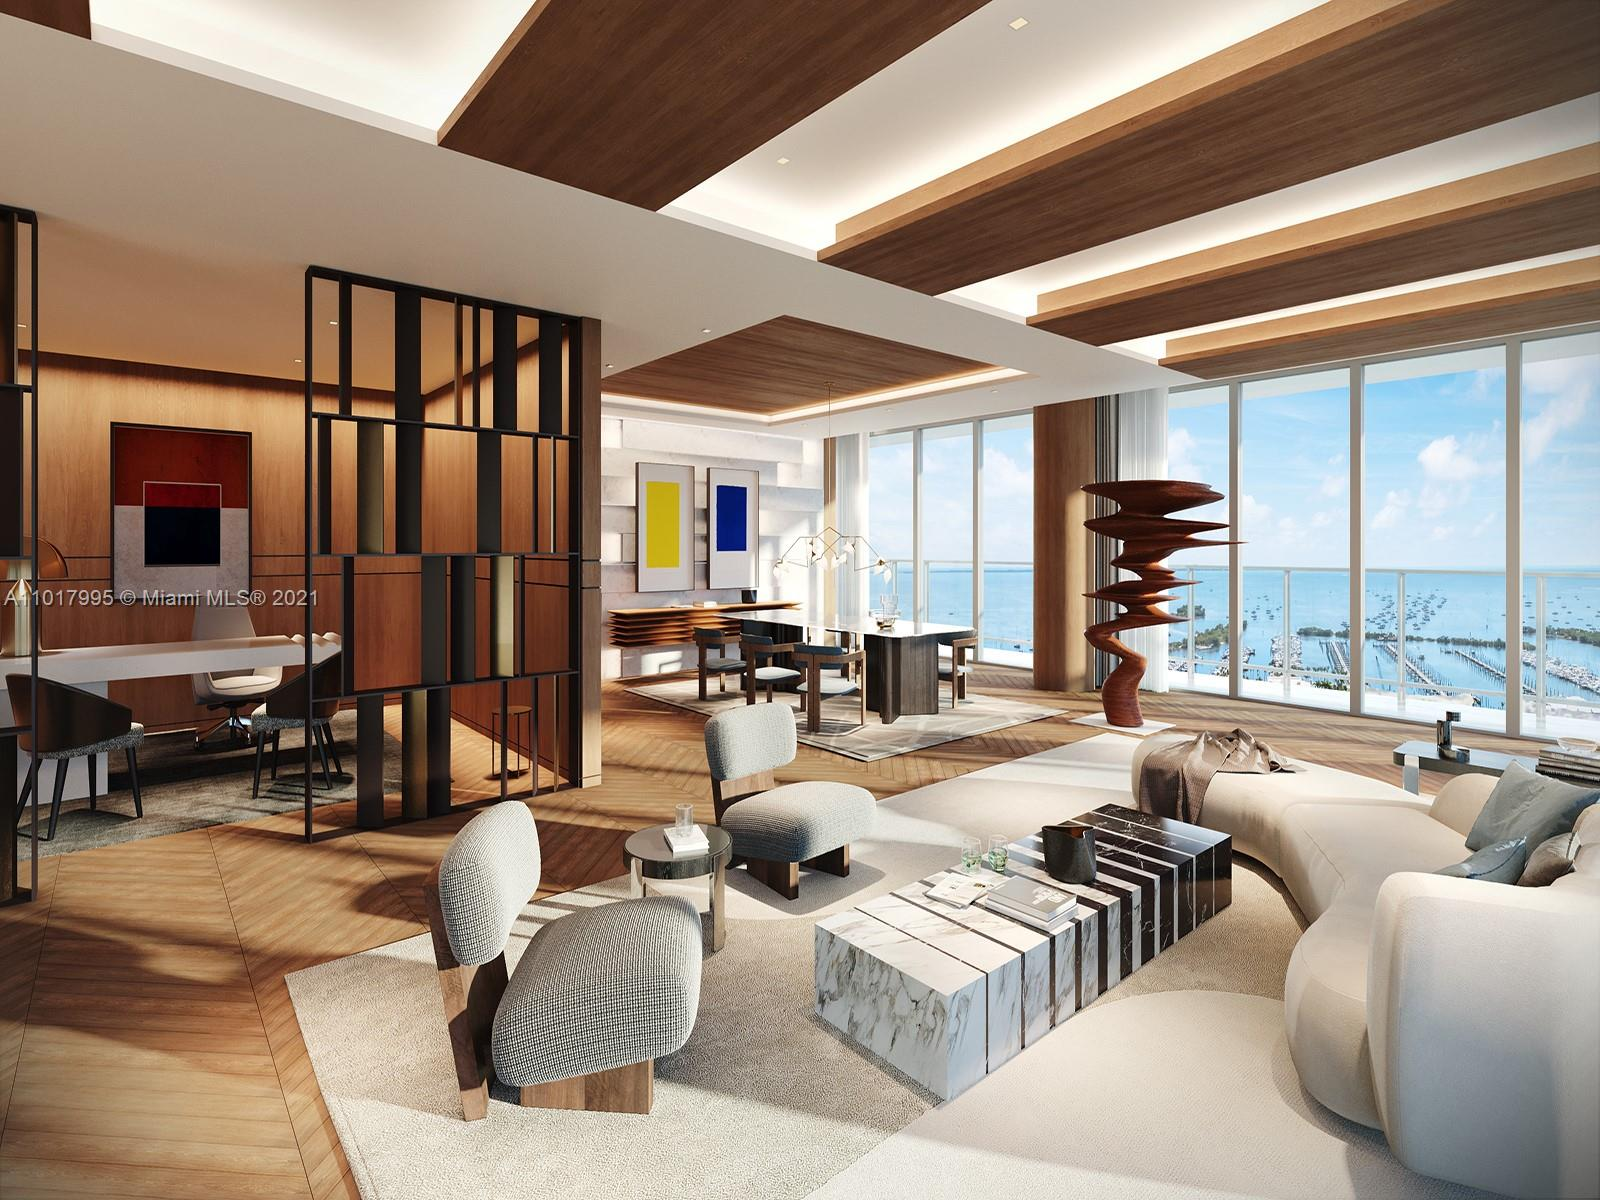 This full-floor penthouse at the most architecturally significant residential building in Coconut Grove offers over 10,000 square feet of free-flowing, flexible space to create your ideal home in the sky. The penthouse's freestanding internal piloti allows light to flow through the hurricane-glass curtain walls which envelope the space, with long, deep balconies extending along the sides. Inside, a monumental, 128-foot-long living room spans the length of the home, under the unit's impressive, 12-foot ceilings, while upstairs is an exquisite private rooftop deck with an oversized pool. Designed by internationally renowned architect Bjarke Ingels, the two Grove at Grand Bay towers twist exotically on the Coconut Grove skyline while offering a plethora of luxurious amenities for residents.